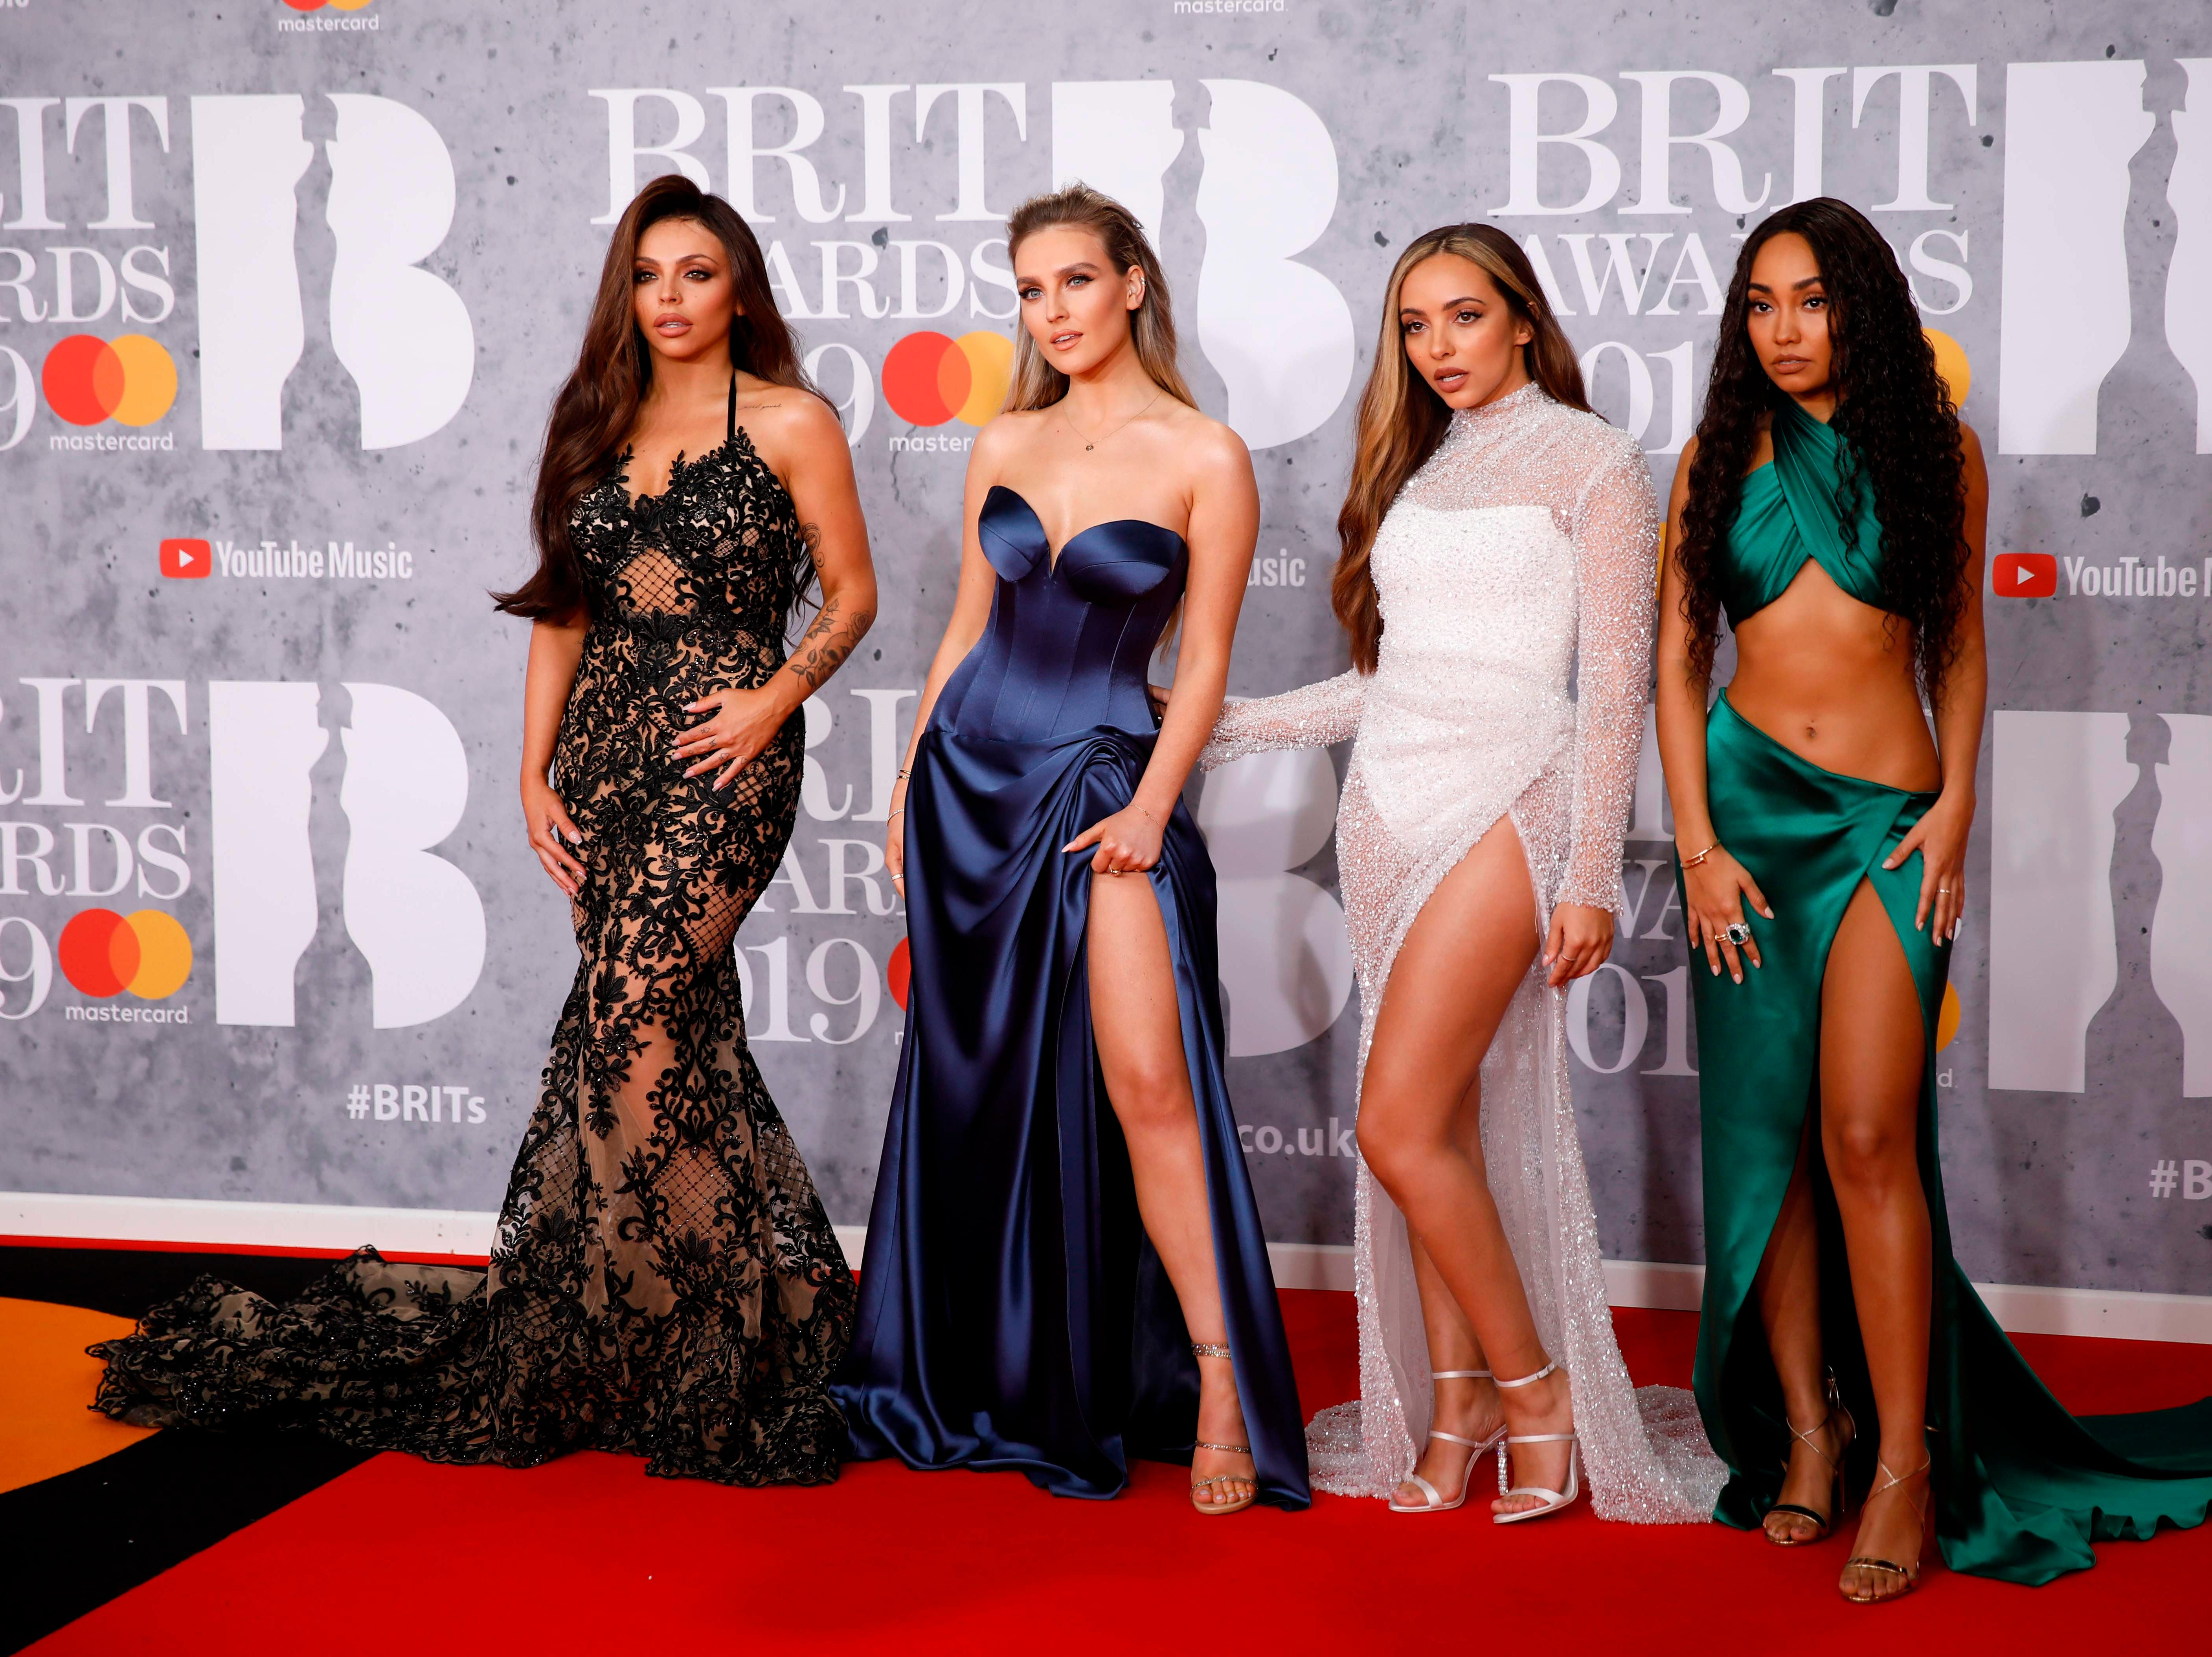 British girl group 'Little Mix', Perrie Edwards, Jesy Nelson, Jade Thirlwall and Leigh-Anne Pinnock pose on the red carpet on arrival for the BRIT Awards 2019 in London on February 20, 2019. (Photo by Tolga AKMEN / AFP) / RESTRICTED TO EDITORIAL USE  NO POSTERS  NO MERCHANDISE NO USE IN PUBLICATIONS DEVOTED TO ARTISTSTOLGA AKMEN/AFP/Getty Images ORIG FILE ID: AFP_1DO1QF